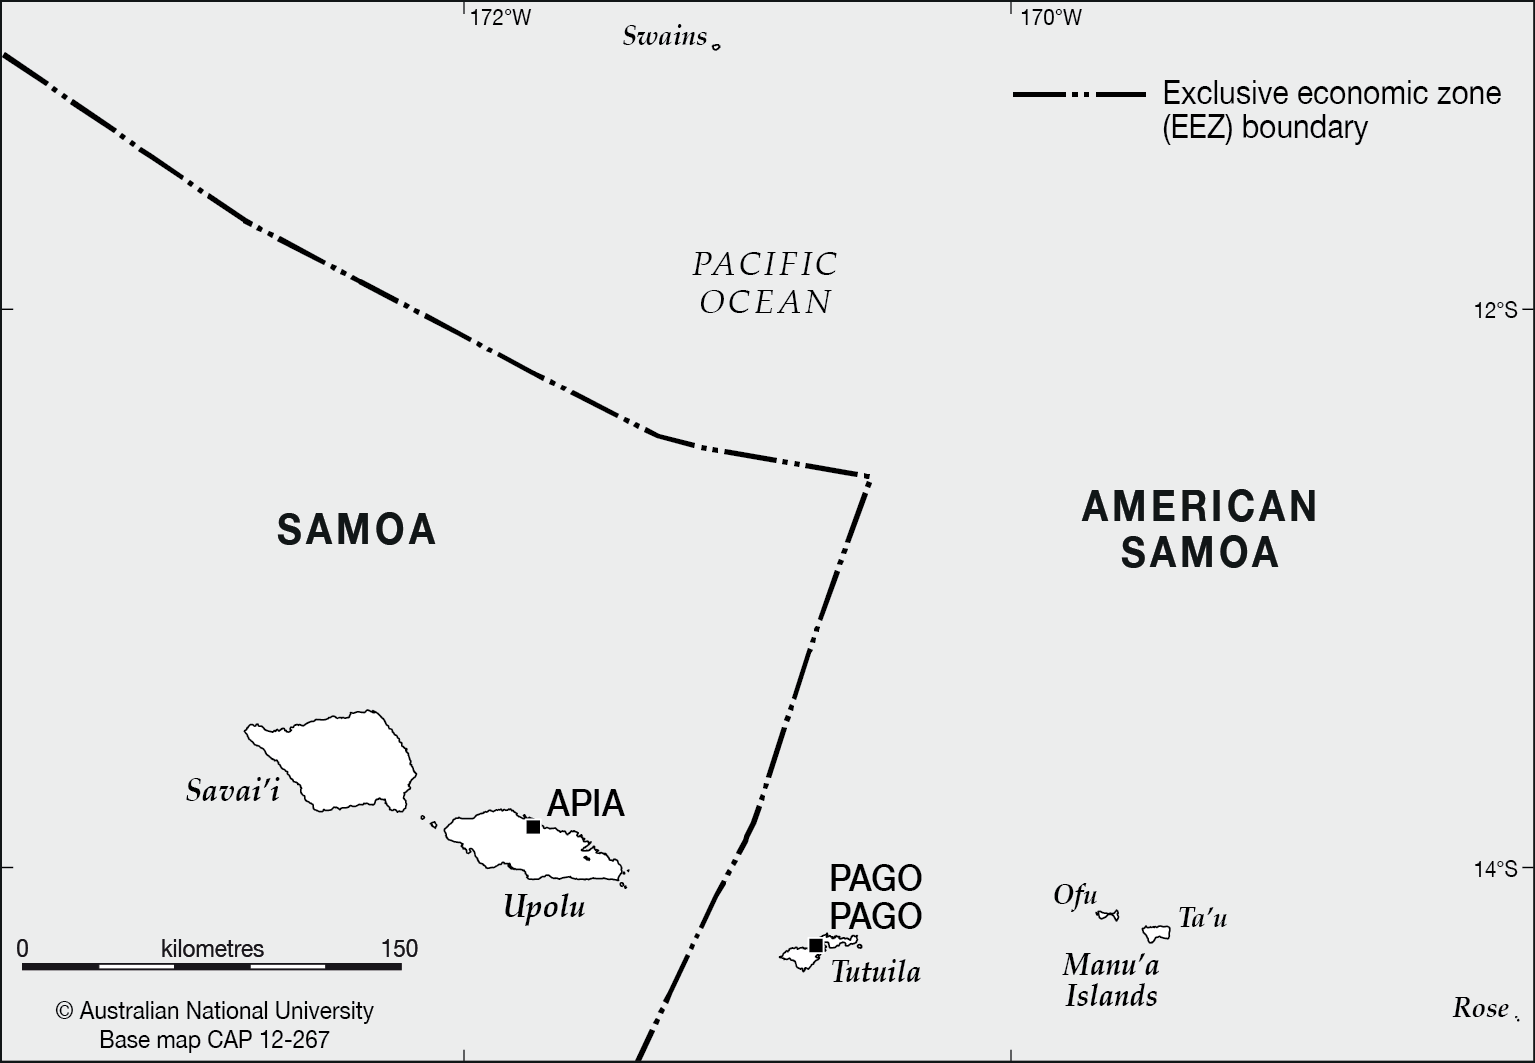 kb elevation map png 14021 kb description samoa and american